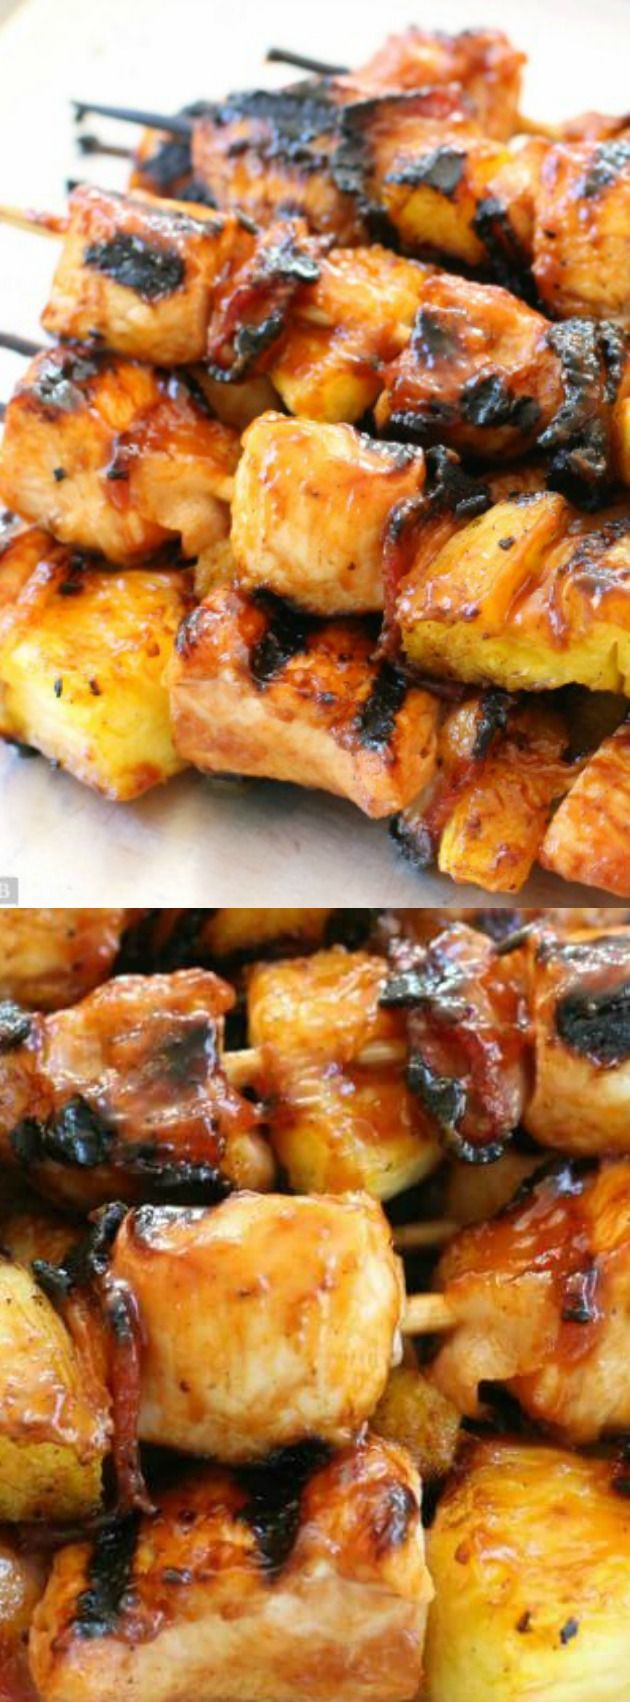 These BBQ Chicken Bacon Pineapple Kabobs from Butter with a Side of Bread have tender chicken paired with tangy pineapple and smoky bacon!